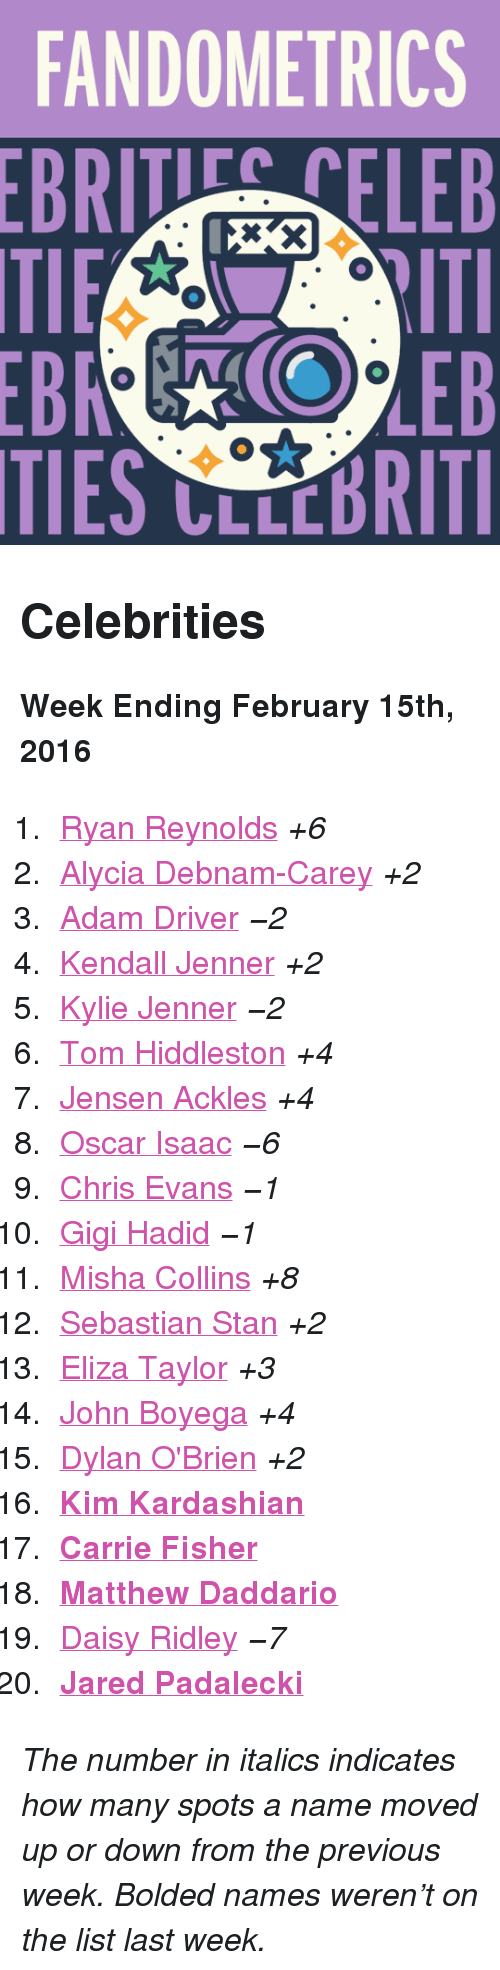 "February 15Th: FANDOMETRICS  BRTELEB  TIES CLLCBRITI <h2>Celebrities</h2><p><b>Week Ending February 15th, 2016</b></p><ol><li><a href=""http://www.tumblr.com/search/ryan%20reynolds"">Ryan Reynolds</a> <i>+6</i></li>  <li><a href=""http://www.tumblr.com/search/alycia%20debnam%20carey"">Alycia Debnam-Carey</a> <i>+2</i></li>  <li><a href=""http://www.tumblr.com/search/adam%20driver"">Adam Driver</a> <i><i>−2</i></i></li>  <li><a href=""http://www.tumblr.com/search/kendall%20jenner"">Kendall Jenner</a> <i>+2</i></li>  <li><a href=""http://www.tumblr.com/search/kylie%20jenner"">Kylie Jenner</a> <i><i>−2</i></i></li>  <li><a href=""http://www.tumblr.com/search/tom%20hiddleston"">Tom Hiddleston</a> <i>+4</i></li>  <li><a href=""http://www.tumblr.com/search/jensen%20ackles"">Jensen Ackles</a> <i>+4</i></li>  <li><a href=""http://www.tumblr.com/search/oscar%20isaac"">Oscar Isaac</a> <i><i>−6</i></i></li>  <li><a href=""http://www.tumblr.com/search/chris%20evans"">Chris Evans</a> <i><i>−1</i></i></li>  <li><a href=""http://www.tumblr.com/search/gigi%20hadid"">Gigi Hadid</a> <i><i>−1</i></i></li>  <li><a href=""http://www.tumblr.com/search/misha%20collins"">Misha Collins</a> <i>+8</i></li>  <li><a href=""http://www.tumblr.com/search/sebastian%20stan"">Sebastian Stan</a> <i>+2</i></li>  <li><a href=""http://www.tumblr.com/search/eliza%20taylor"">Eliza Taylor</a> <i>+3</i></li>  <li><a href=""http://www.tumblr.com/search/john%20boyega"">John Boyega</a> <i>+4</i></li>  <li><a href=""http://www.tumblr.com/search/dylan%20o'brien"">Dylan O'Brien</a> <i>+2</i></li>  <li><a href=""http://www.tumblr.com/search/kim%20kardashian""><b>Kim Kardashian</b></a></li>  <li><a href=""http://www.tumblr.com/search/carrie%20fisher""><b>Carrie Fisher</b></a></li>  <li><a href=""http://www.tumblr.com/search/matthew%20daddario""><b>Matthew Daddario</b></a></li>  <li><a href=""http://www.tumblr.com/search/daisy%20ridley"">Daisy Ridley</a> <i><i>−7</i></i></li>  <li><a href=""http://www.tumblr.com/search/jared%20padalecki""><b>Jared Padalecki</b></a></li></ol><p><i>The number in italics indicates how many spots a name moved up or down from the previous week. Bolded names weren't on the list last week.</i></p>"